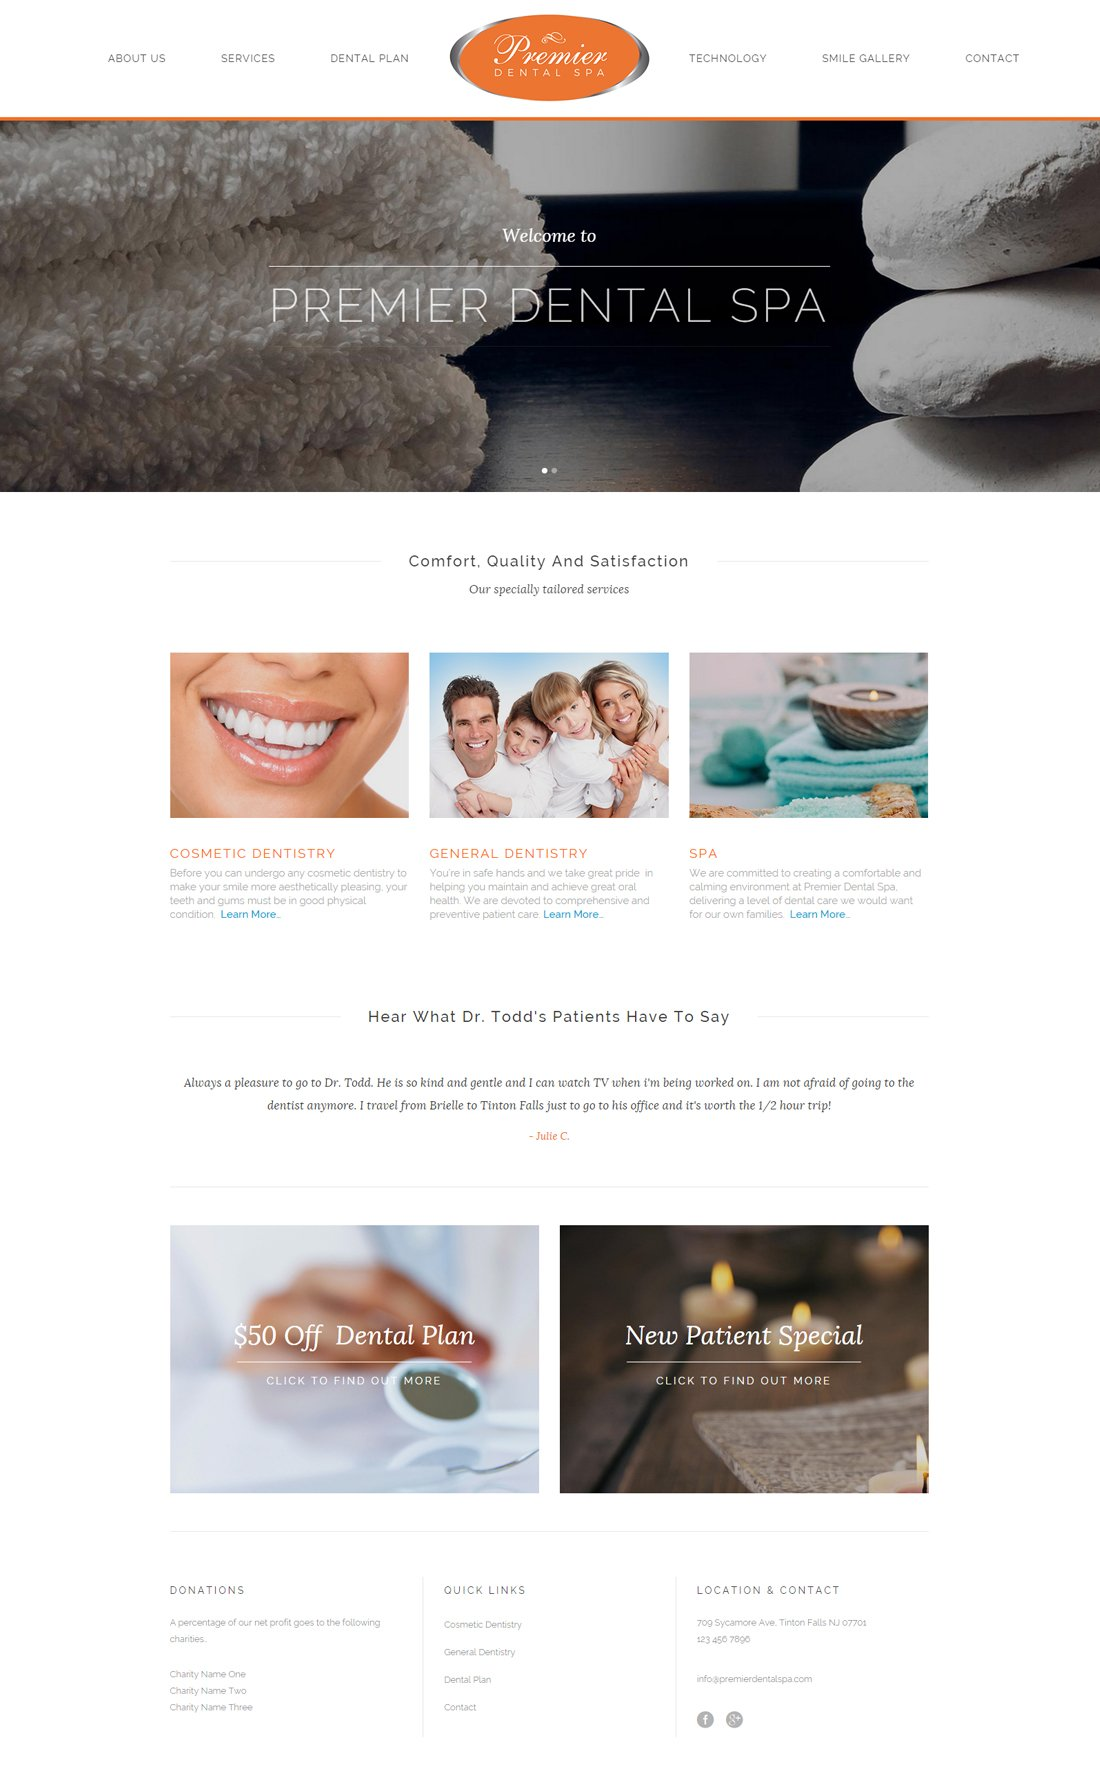 Wordpress, Mobile Friendly web design for Premier Dental Spa, by olidenson.